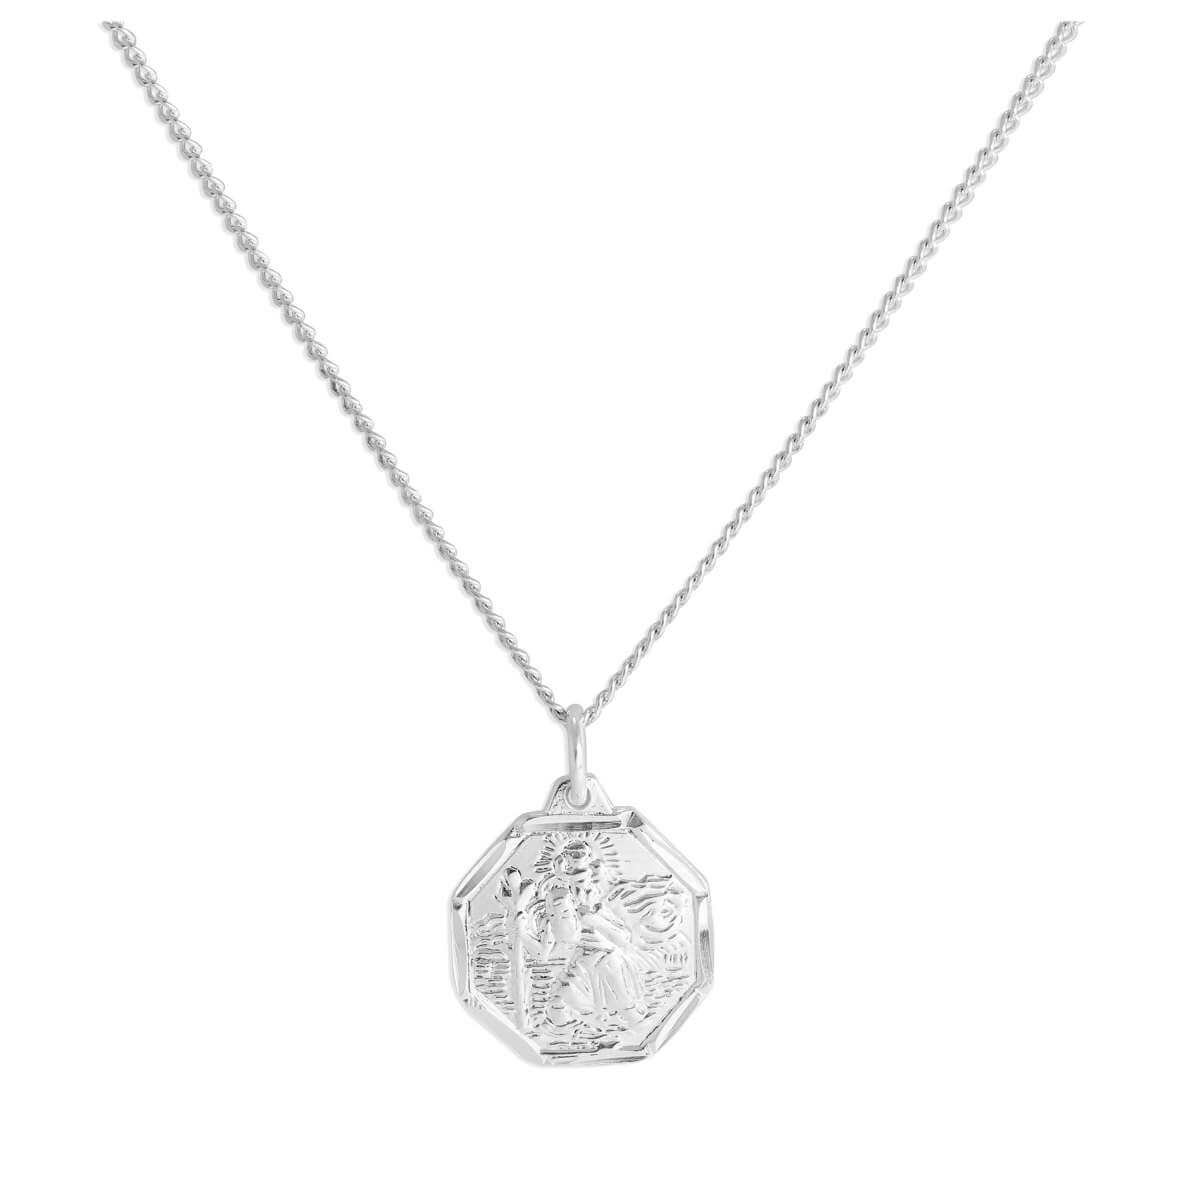 Sterling Silver Diamond Cut Octagonal St Christopher Necklace 16 - 24 Inches